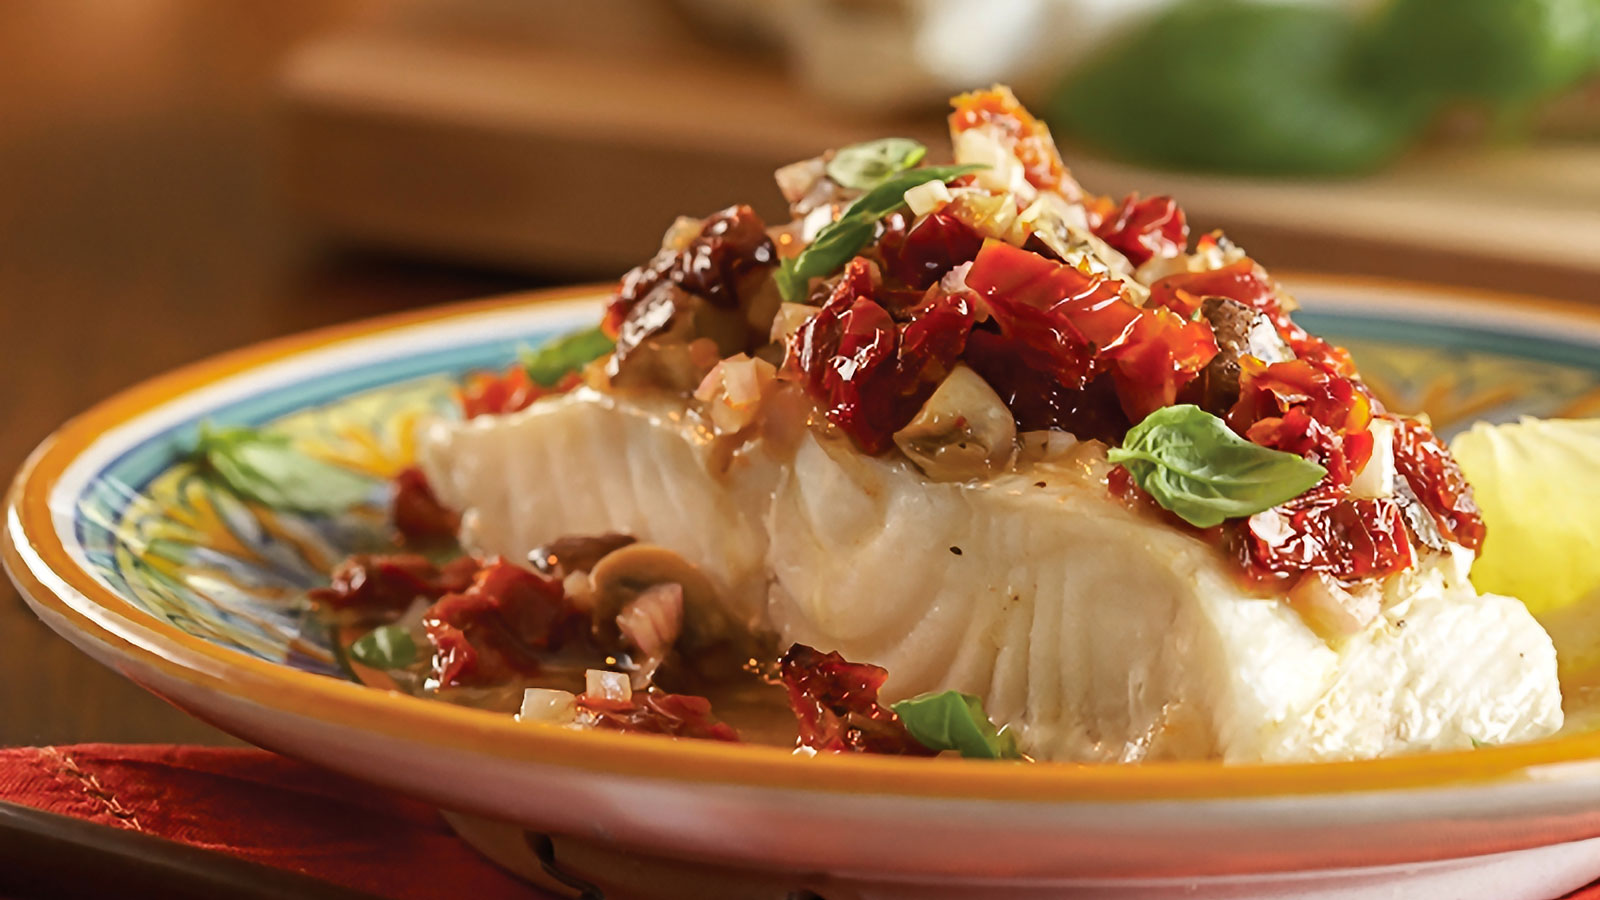 Baked Sun Dried Tomato Cod with Shallots, Mushrooms, & Fresh Basil